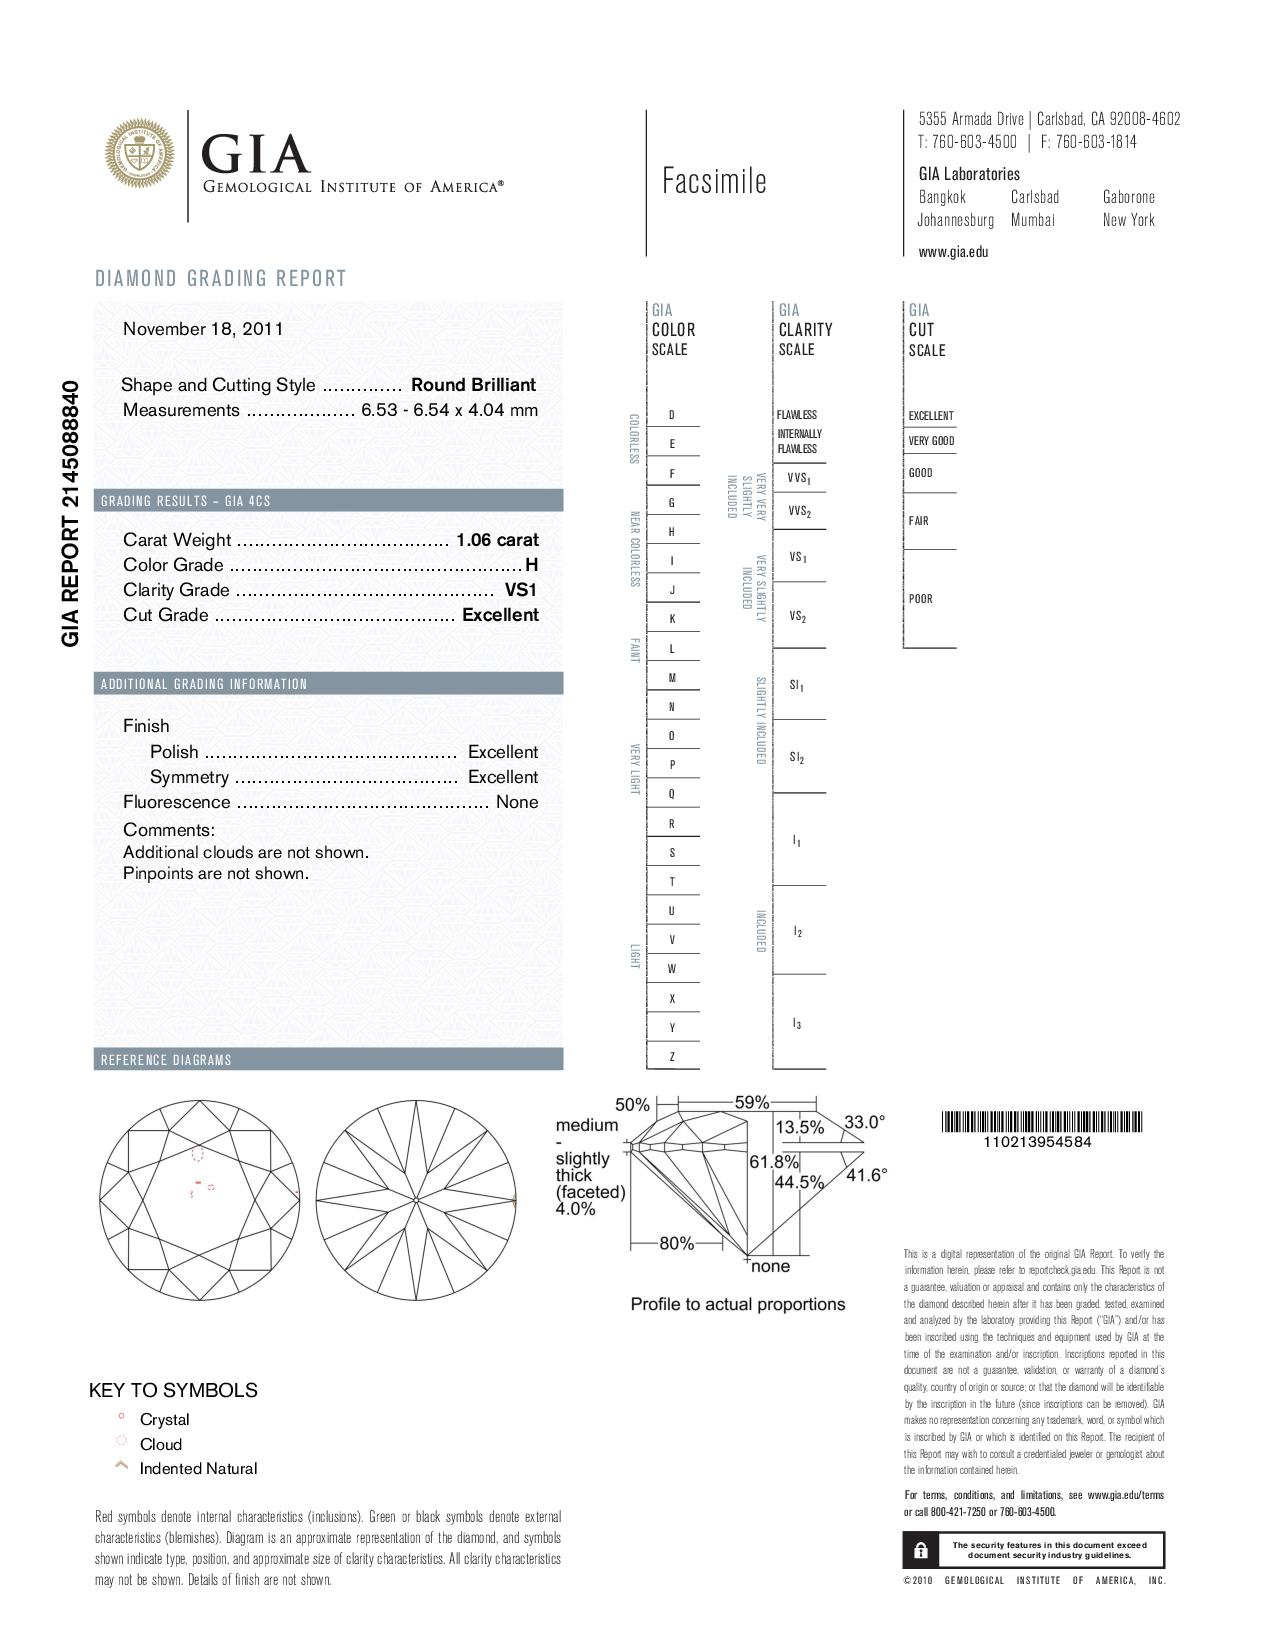 This is a 1.06 carat round shape, H color, VS1 clarity natural diamond accompanied by a GIA grading report.